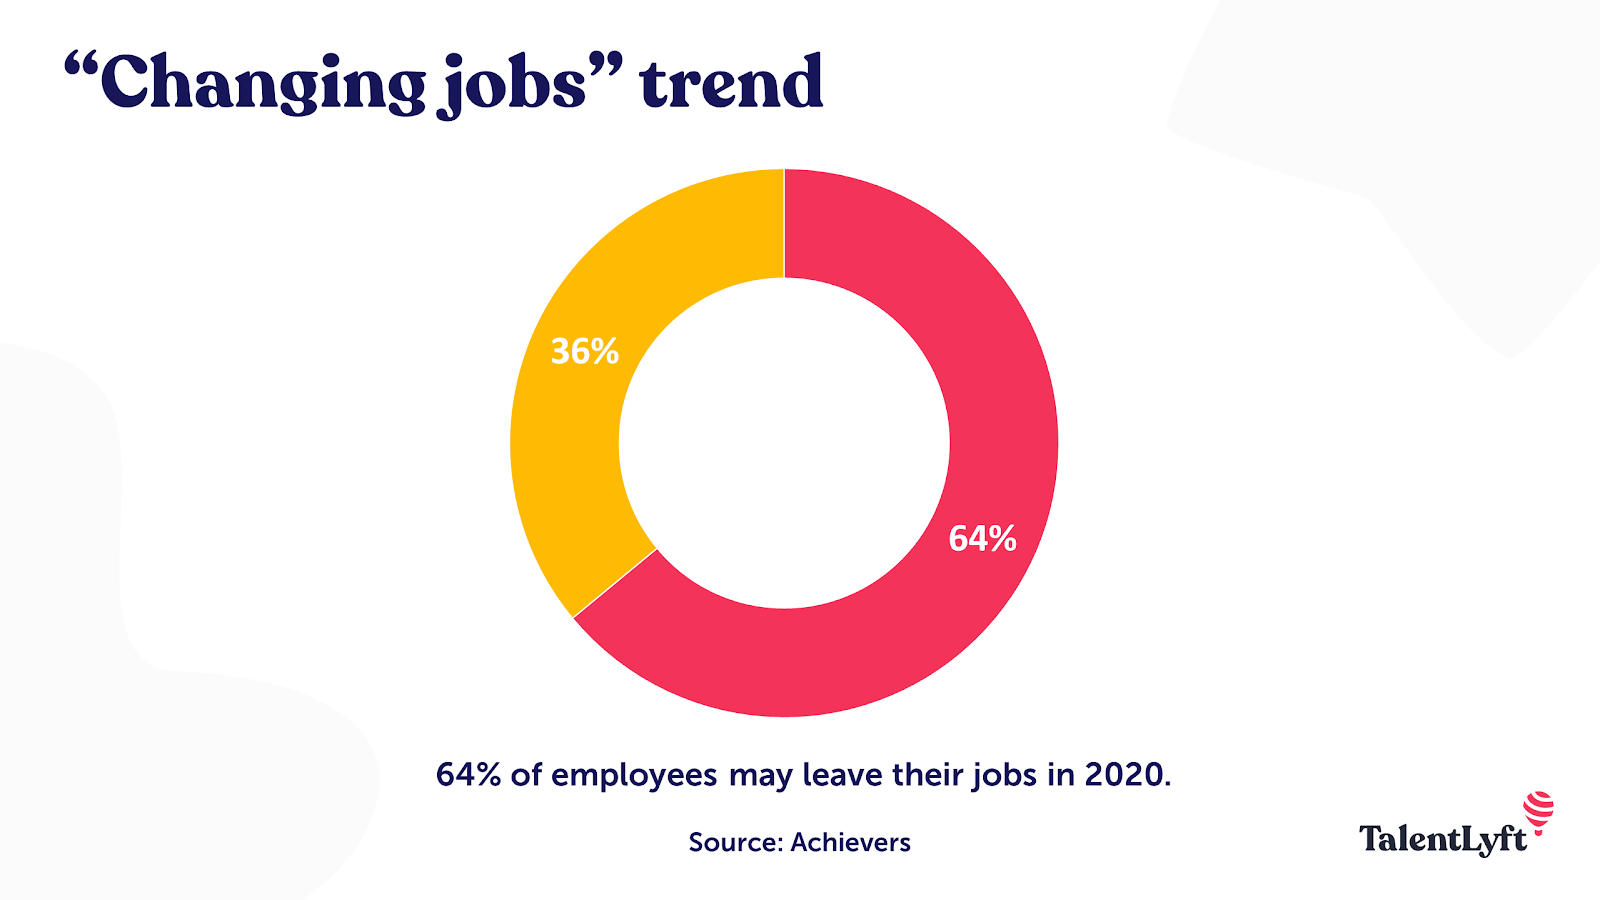 Changing job trend 2020